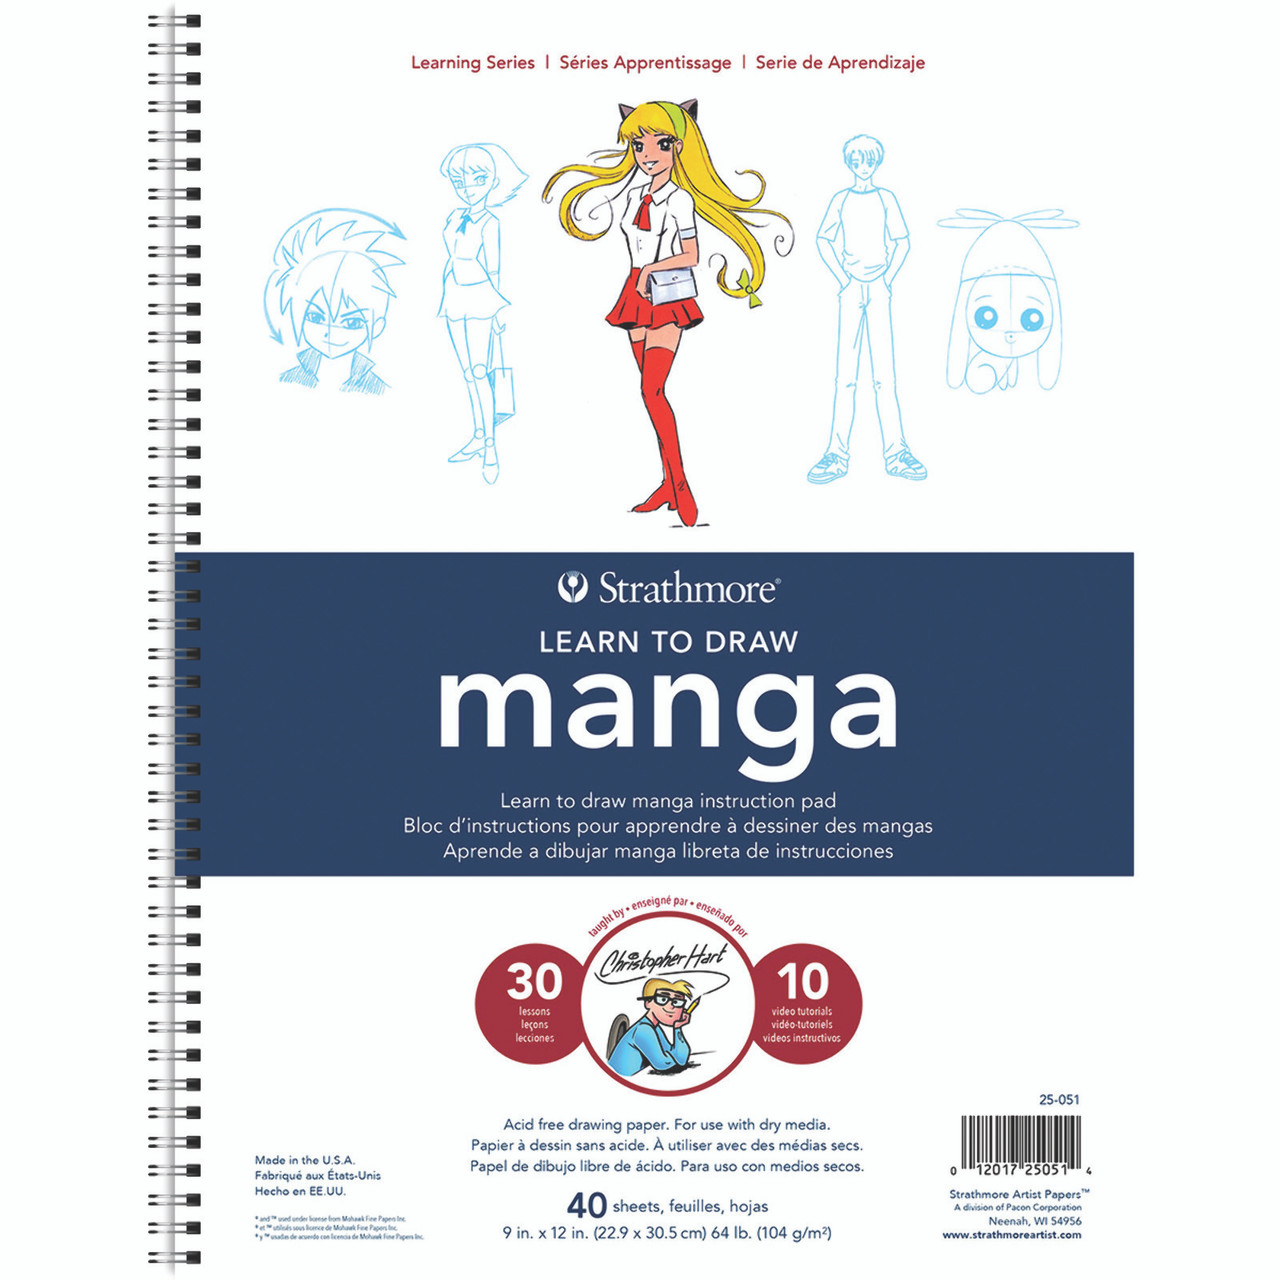 Learning Series Drawing Pad 9 x 12 Manga